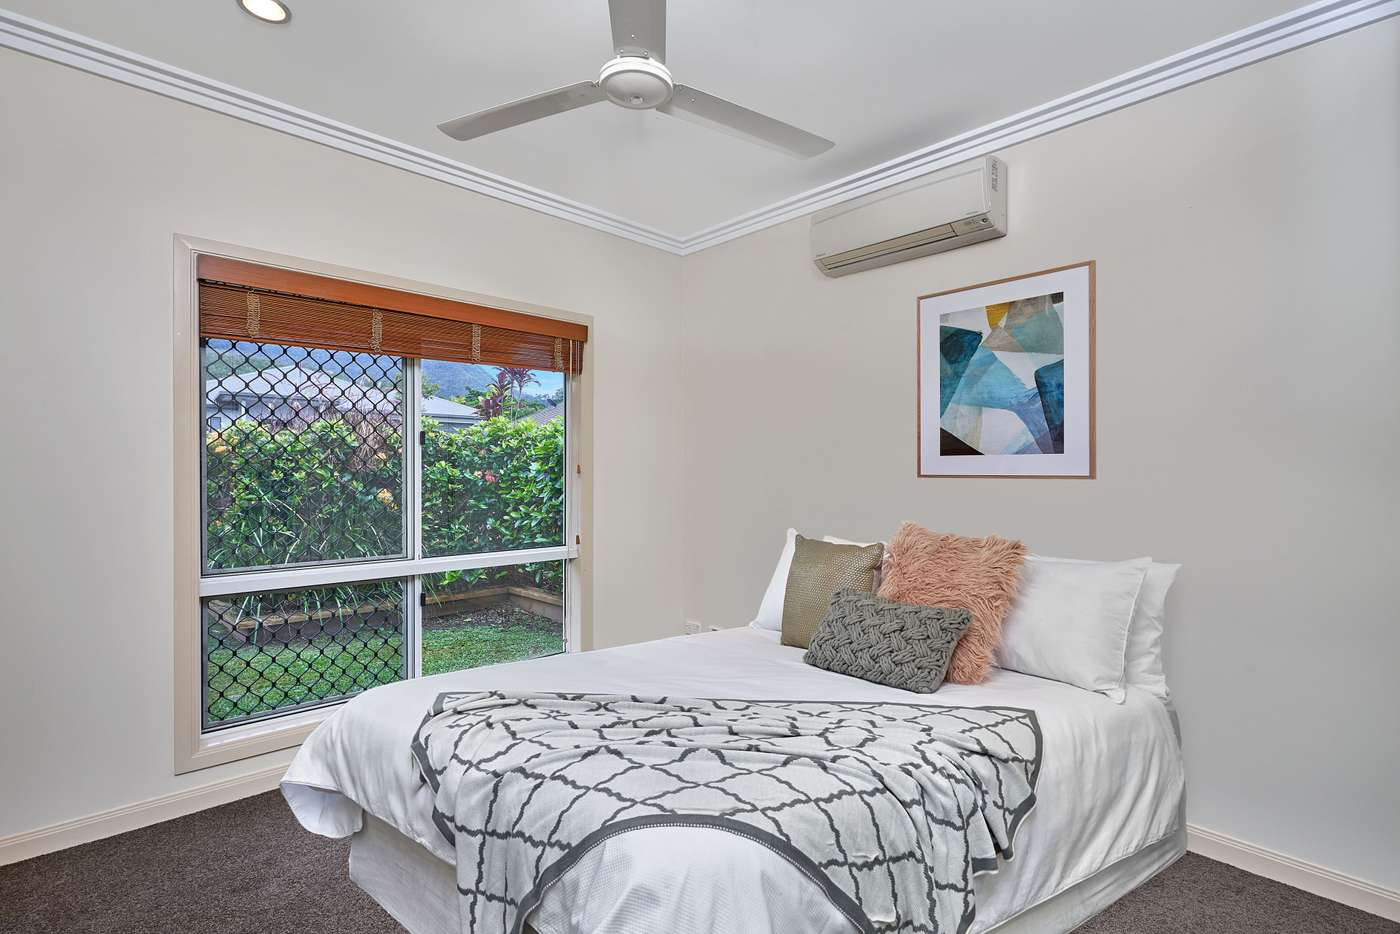 Sixth view of Homely house listing, 9 Ashwood Circuit, Smithfield QLD 4878